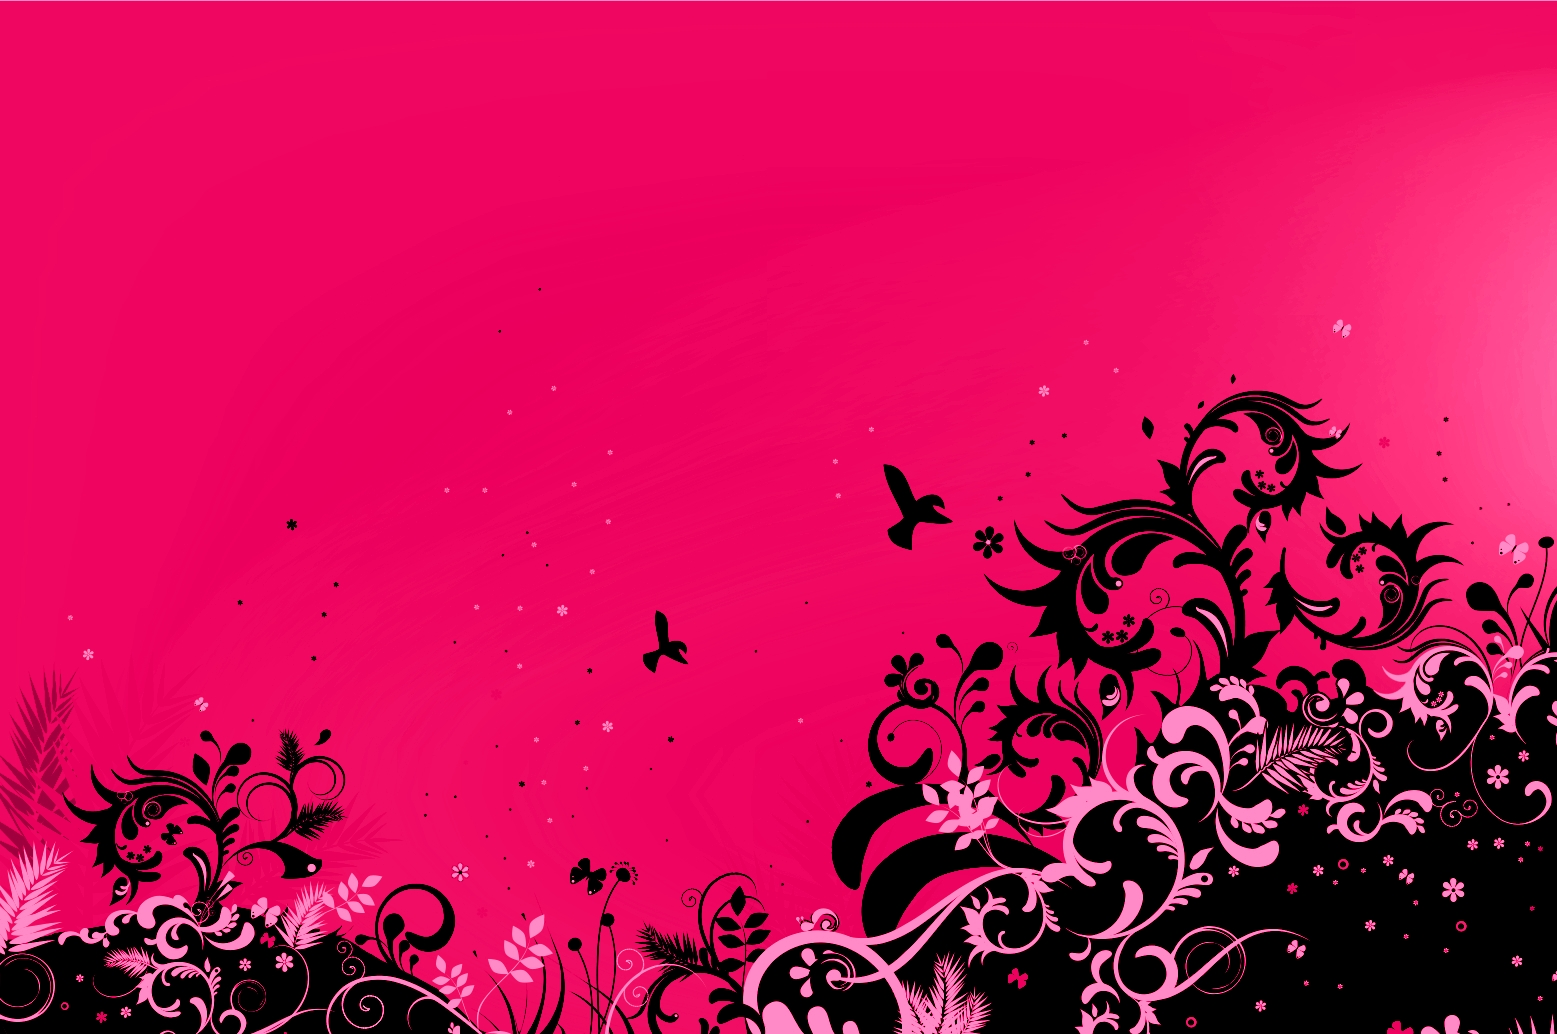 hp wallpaper pink - photo #12